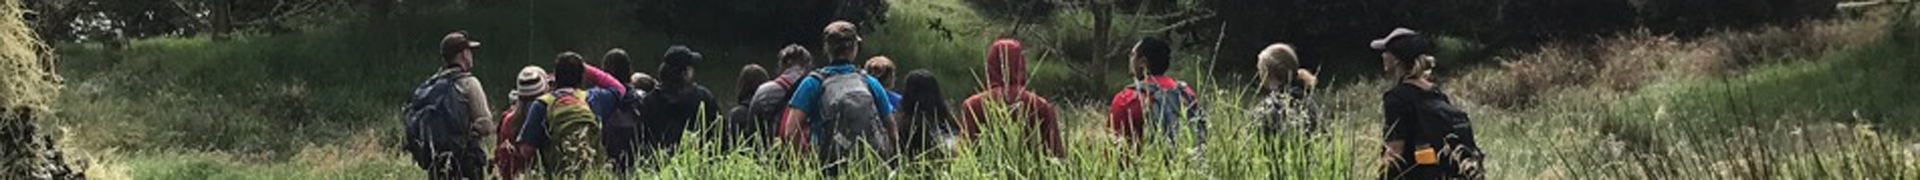 High school students exploring the Hakalau Forest National Wildlife Refuge.